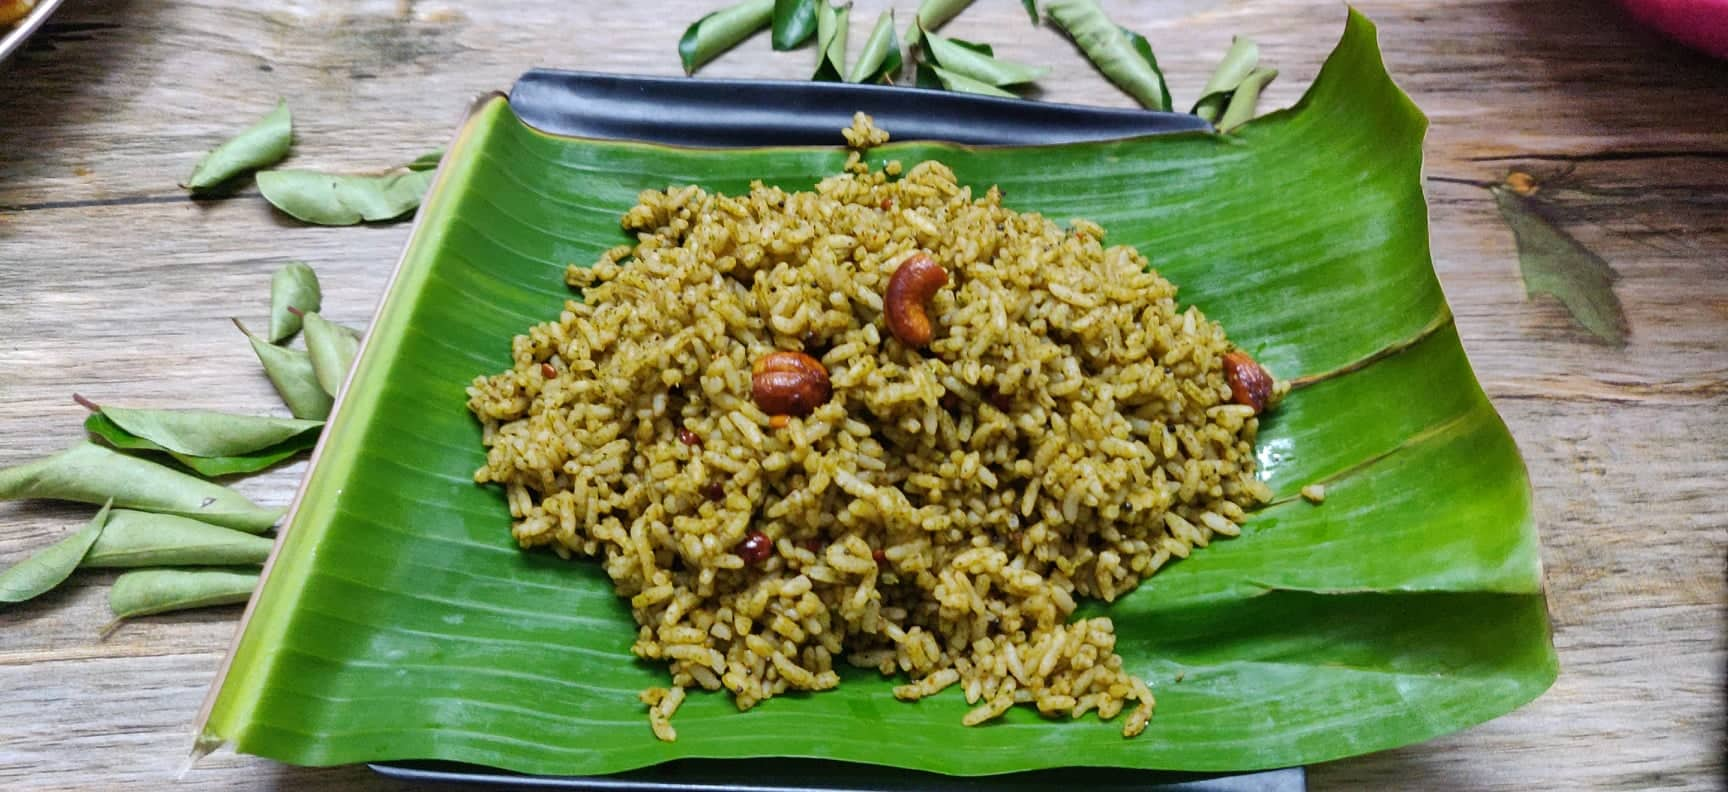 curry_leaves_rice - 82578289_174974407204870_5716500844187222016_n